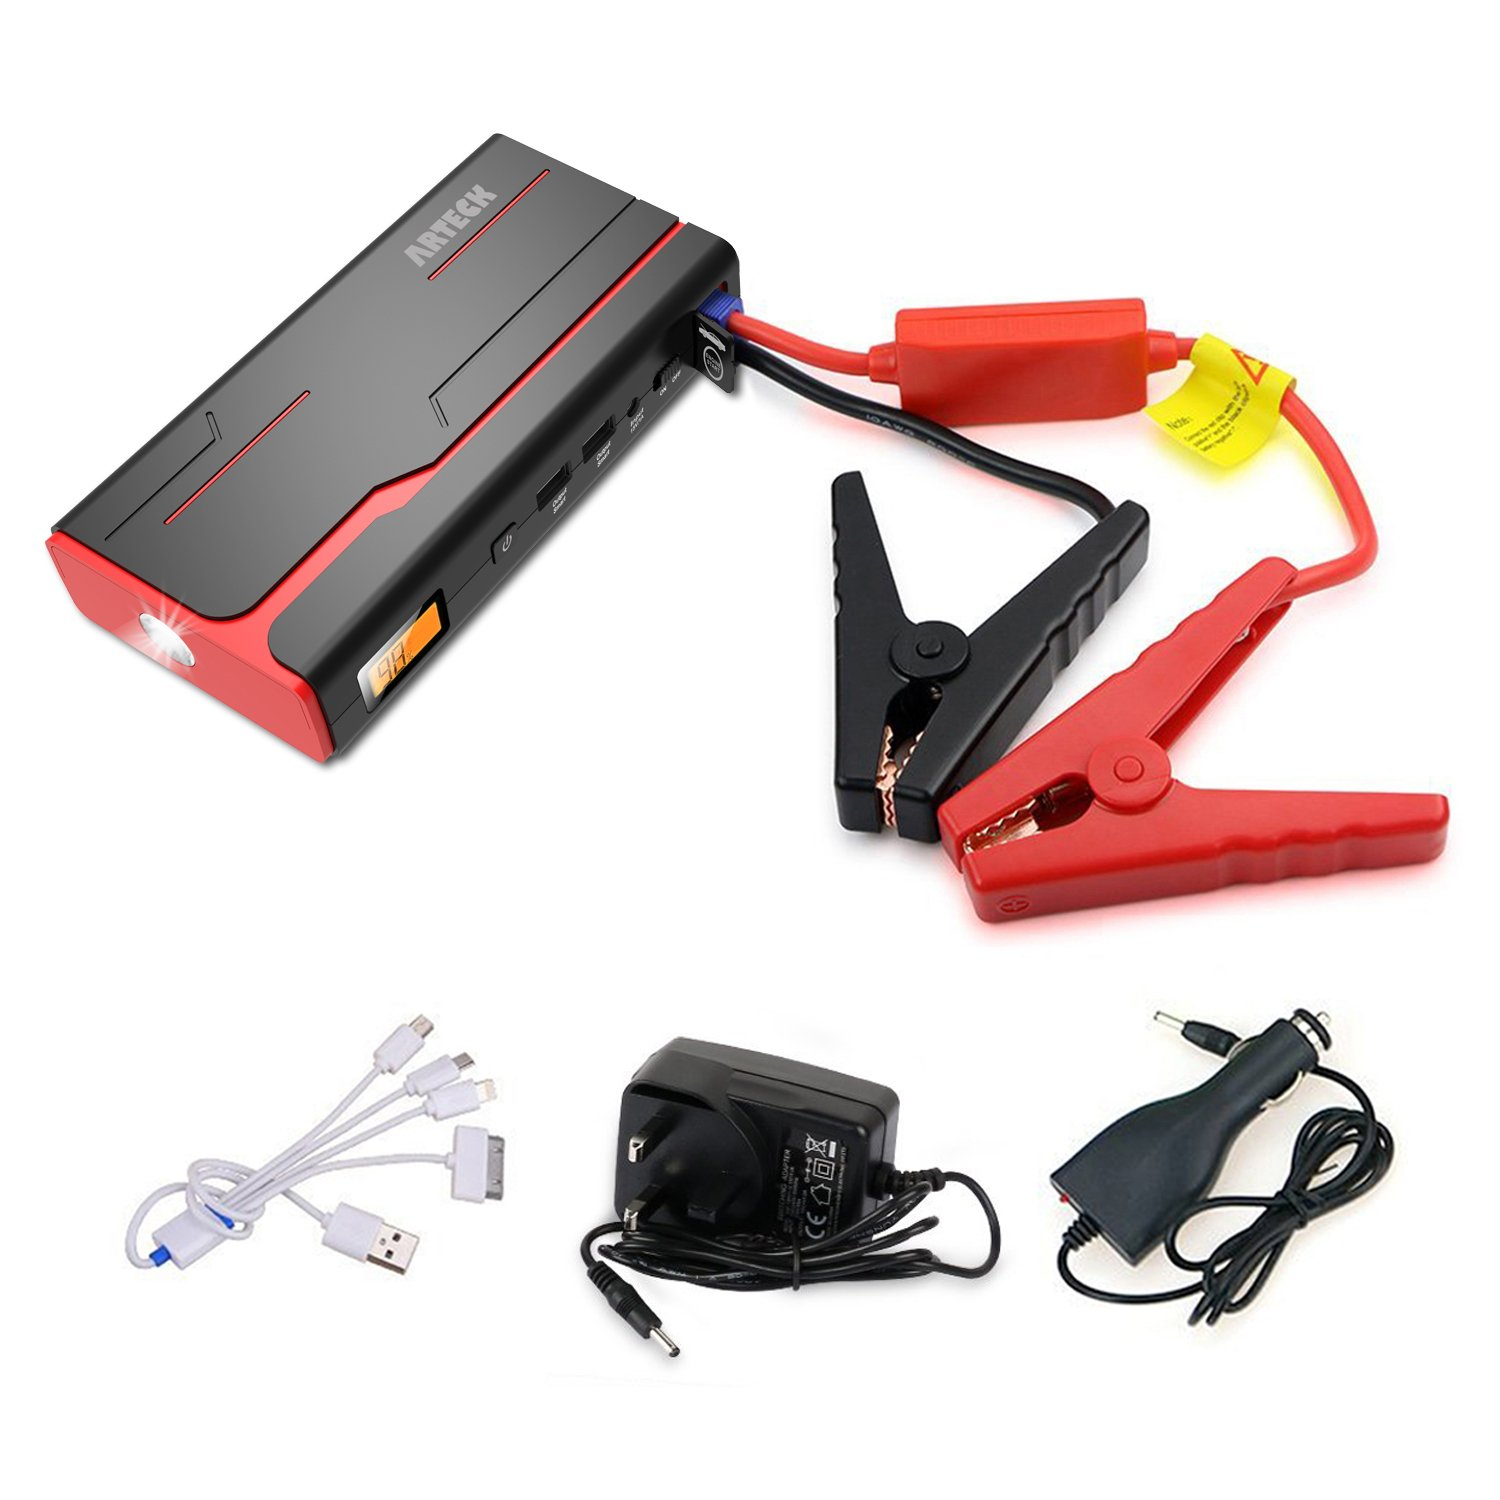 ARTECK 600A Peak Car Jump Starter (Up to 7.0L Gas or 6.5L Diesel) Auto Battery Charger and 18000mAh Portable External Battery Charger for Automotive, Boat, Phone with Adaptors, 12V Jump Leads, LED D-29